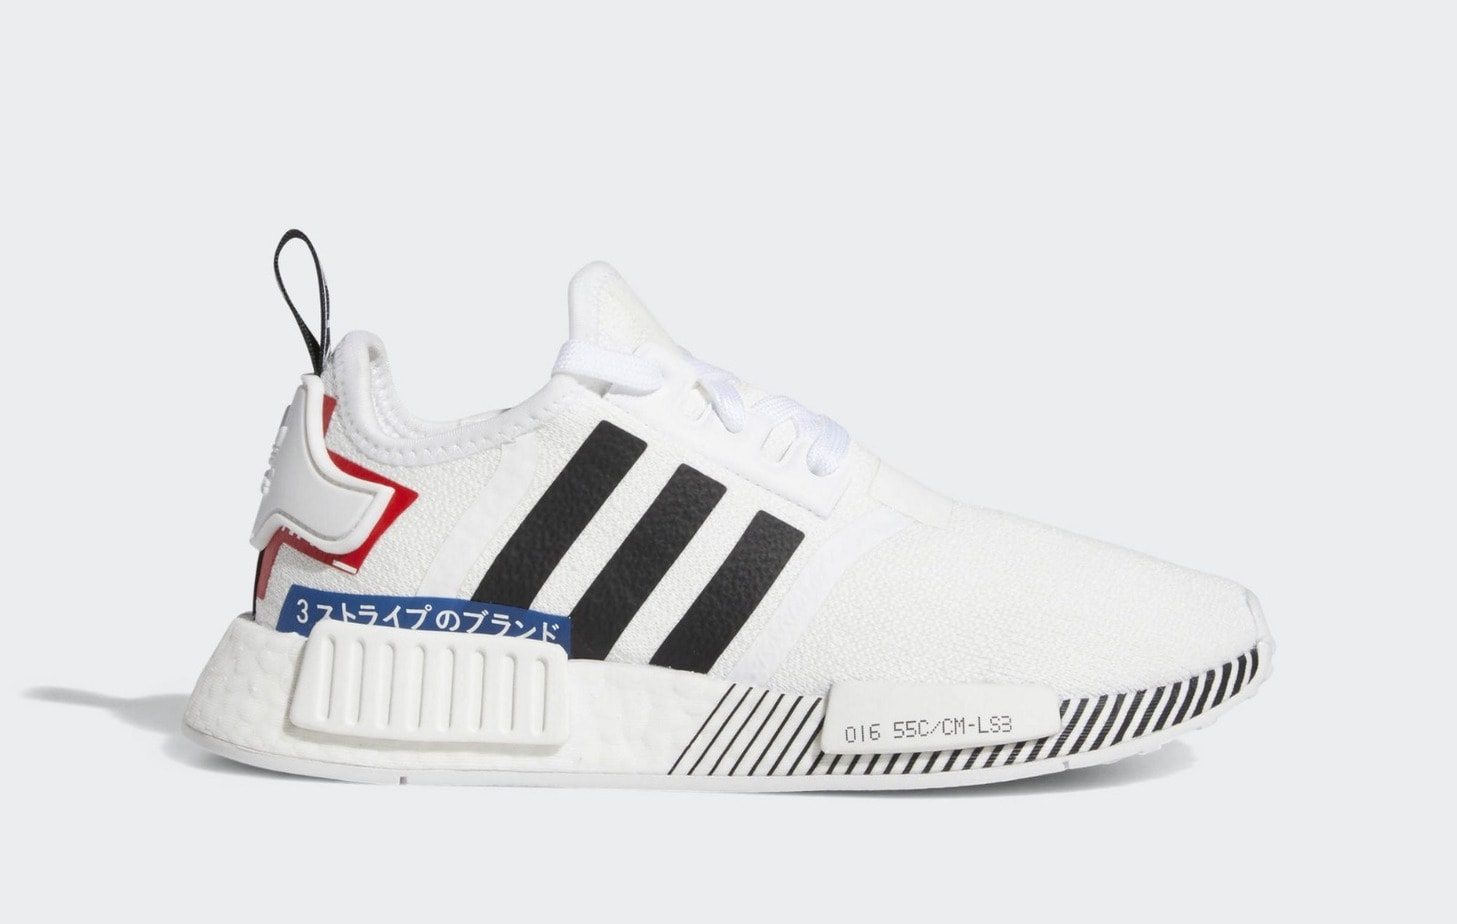 e0b2679e3 The adidas NMD family has been a staple of the originals category since its  debut in 2015. Since then